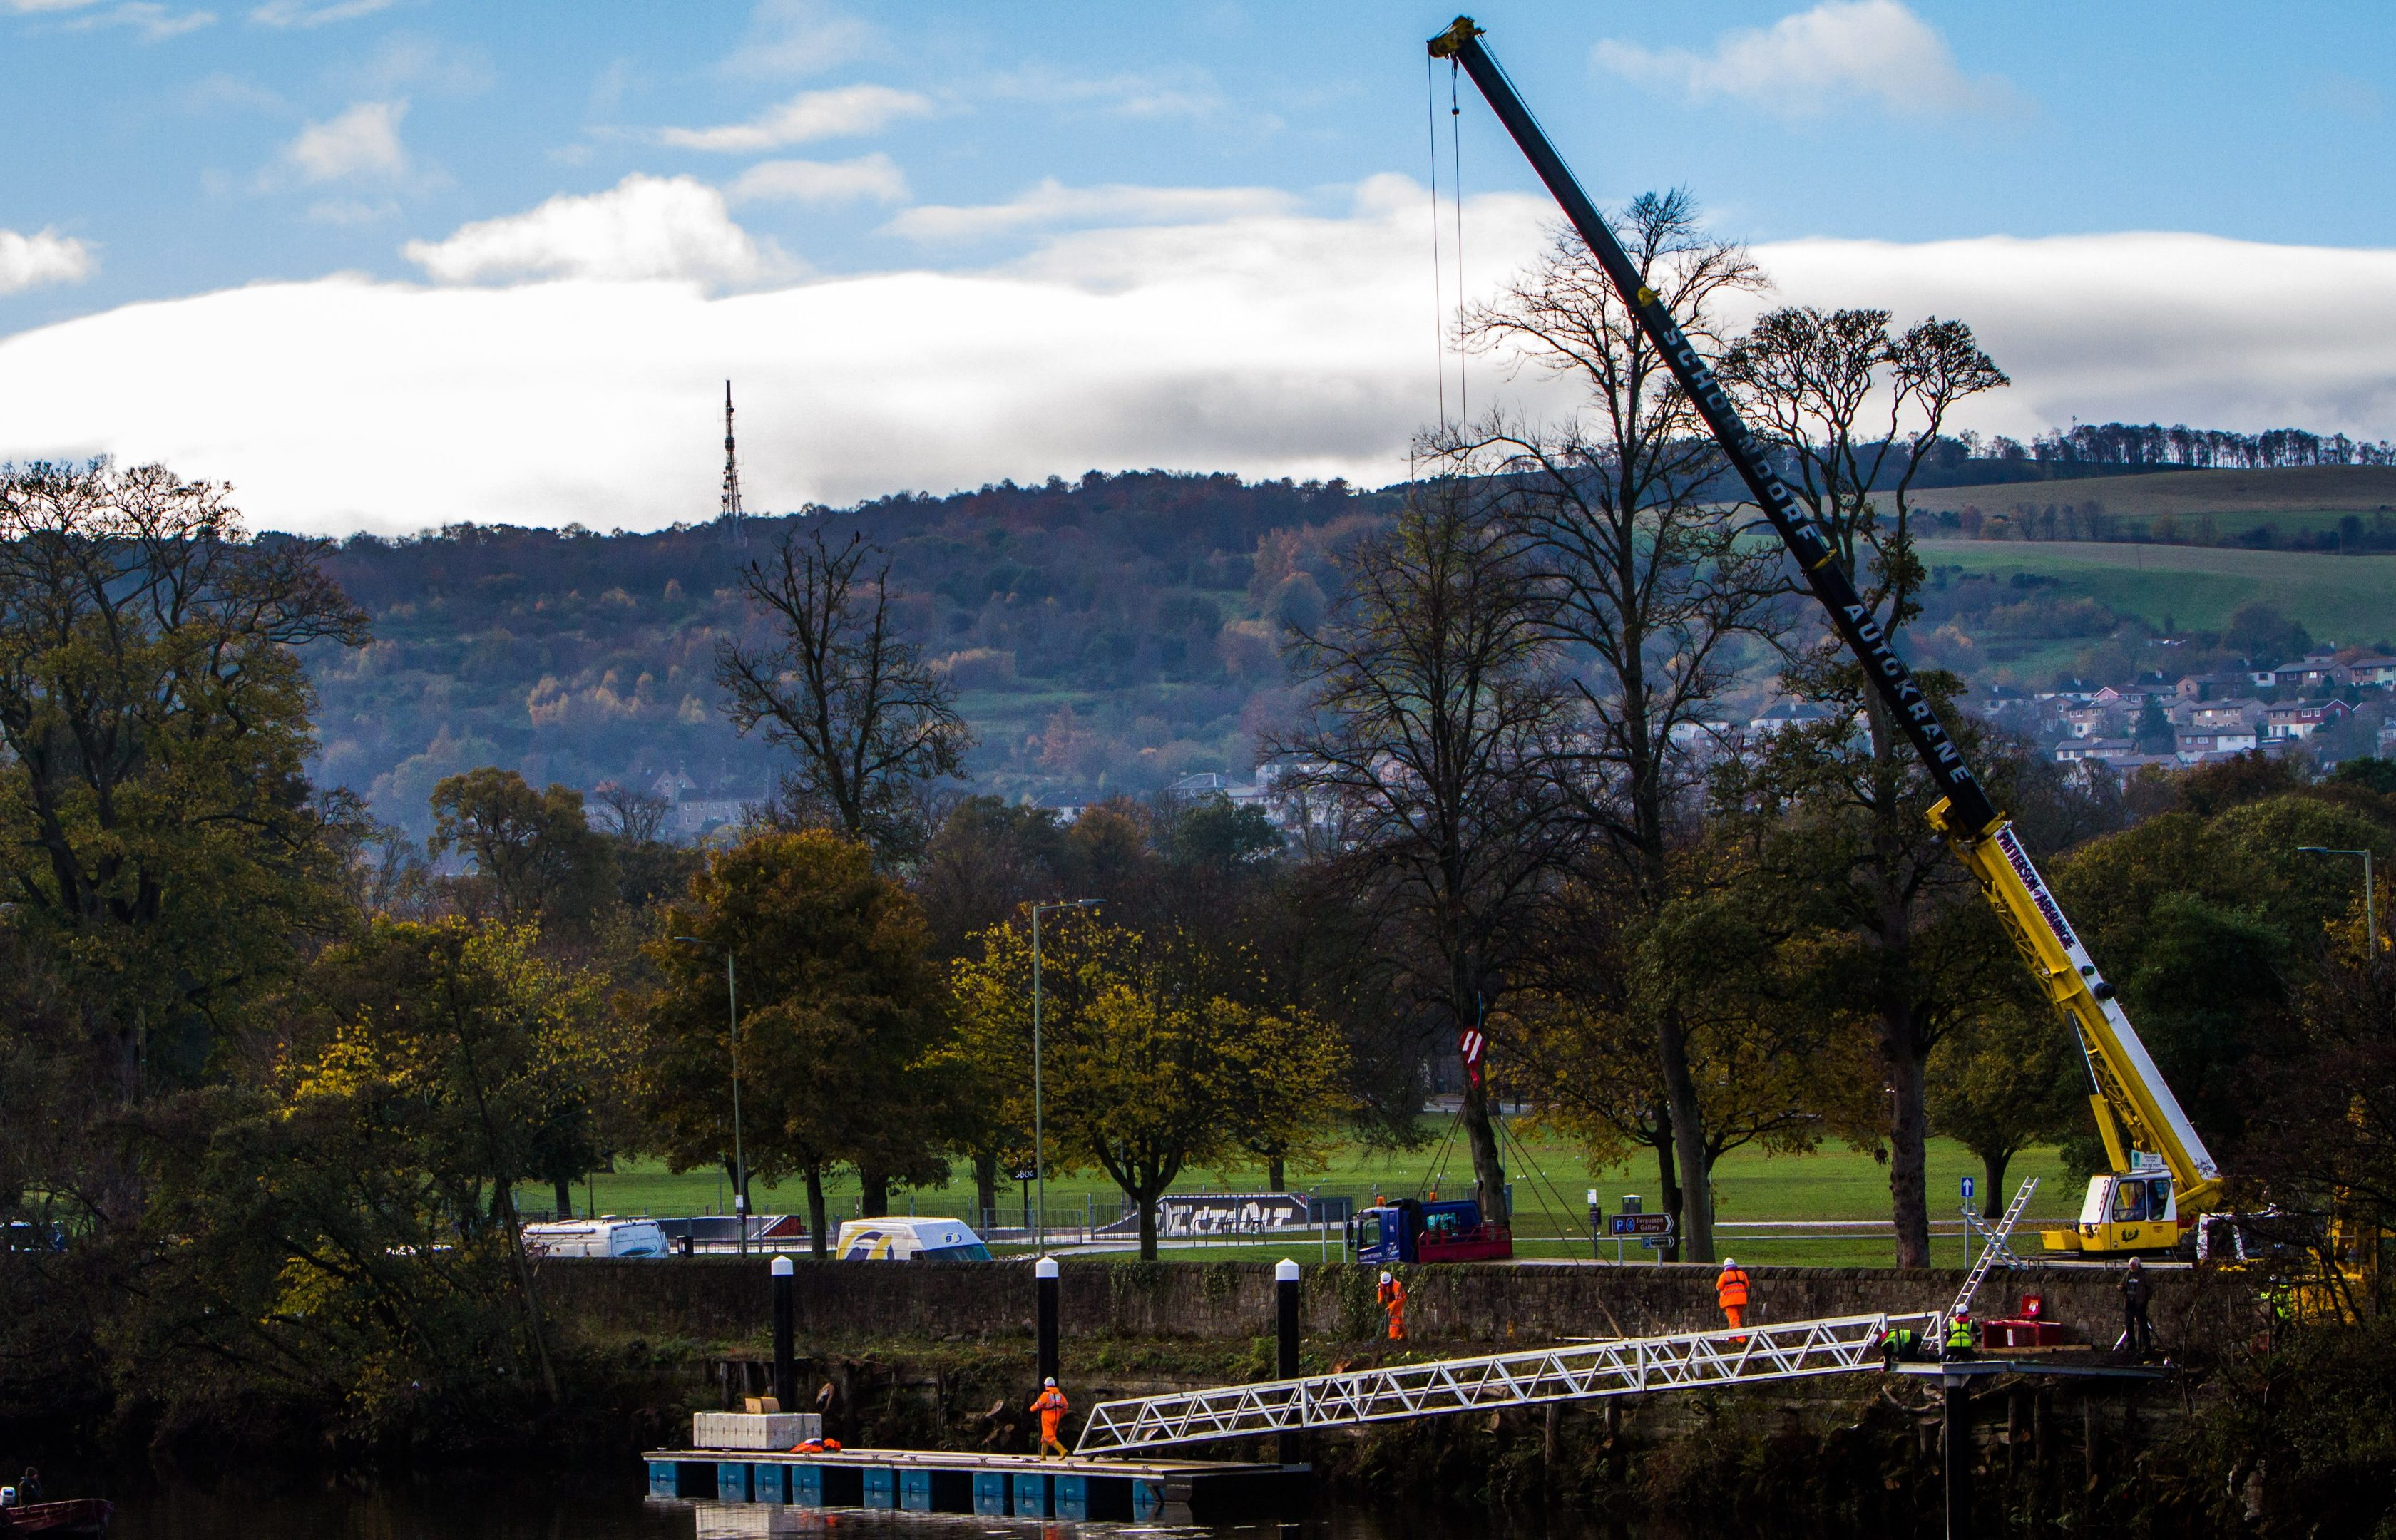 Engineers working on a pontoon on the River Tay in Perth.